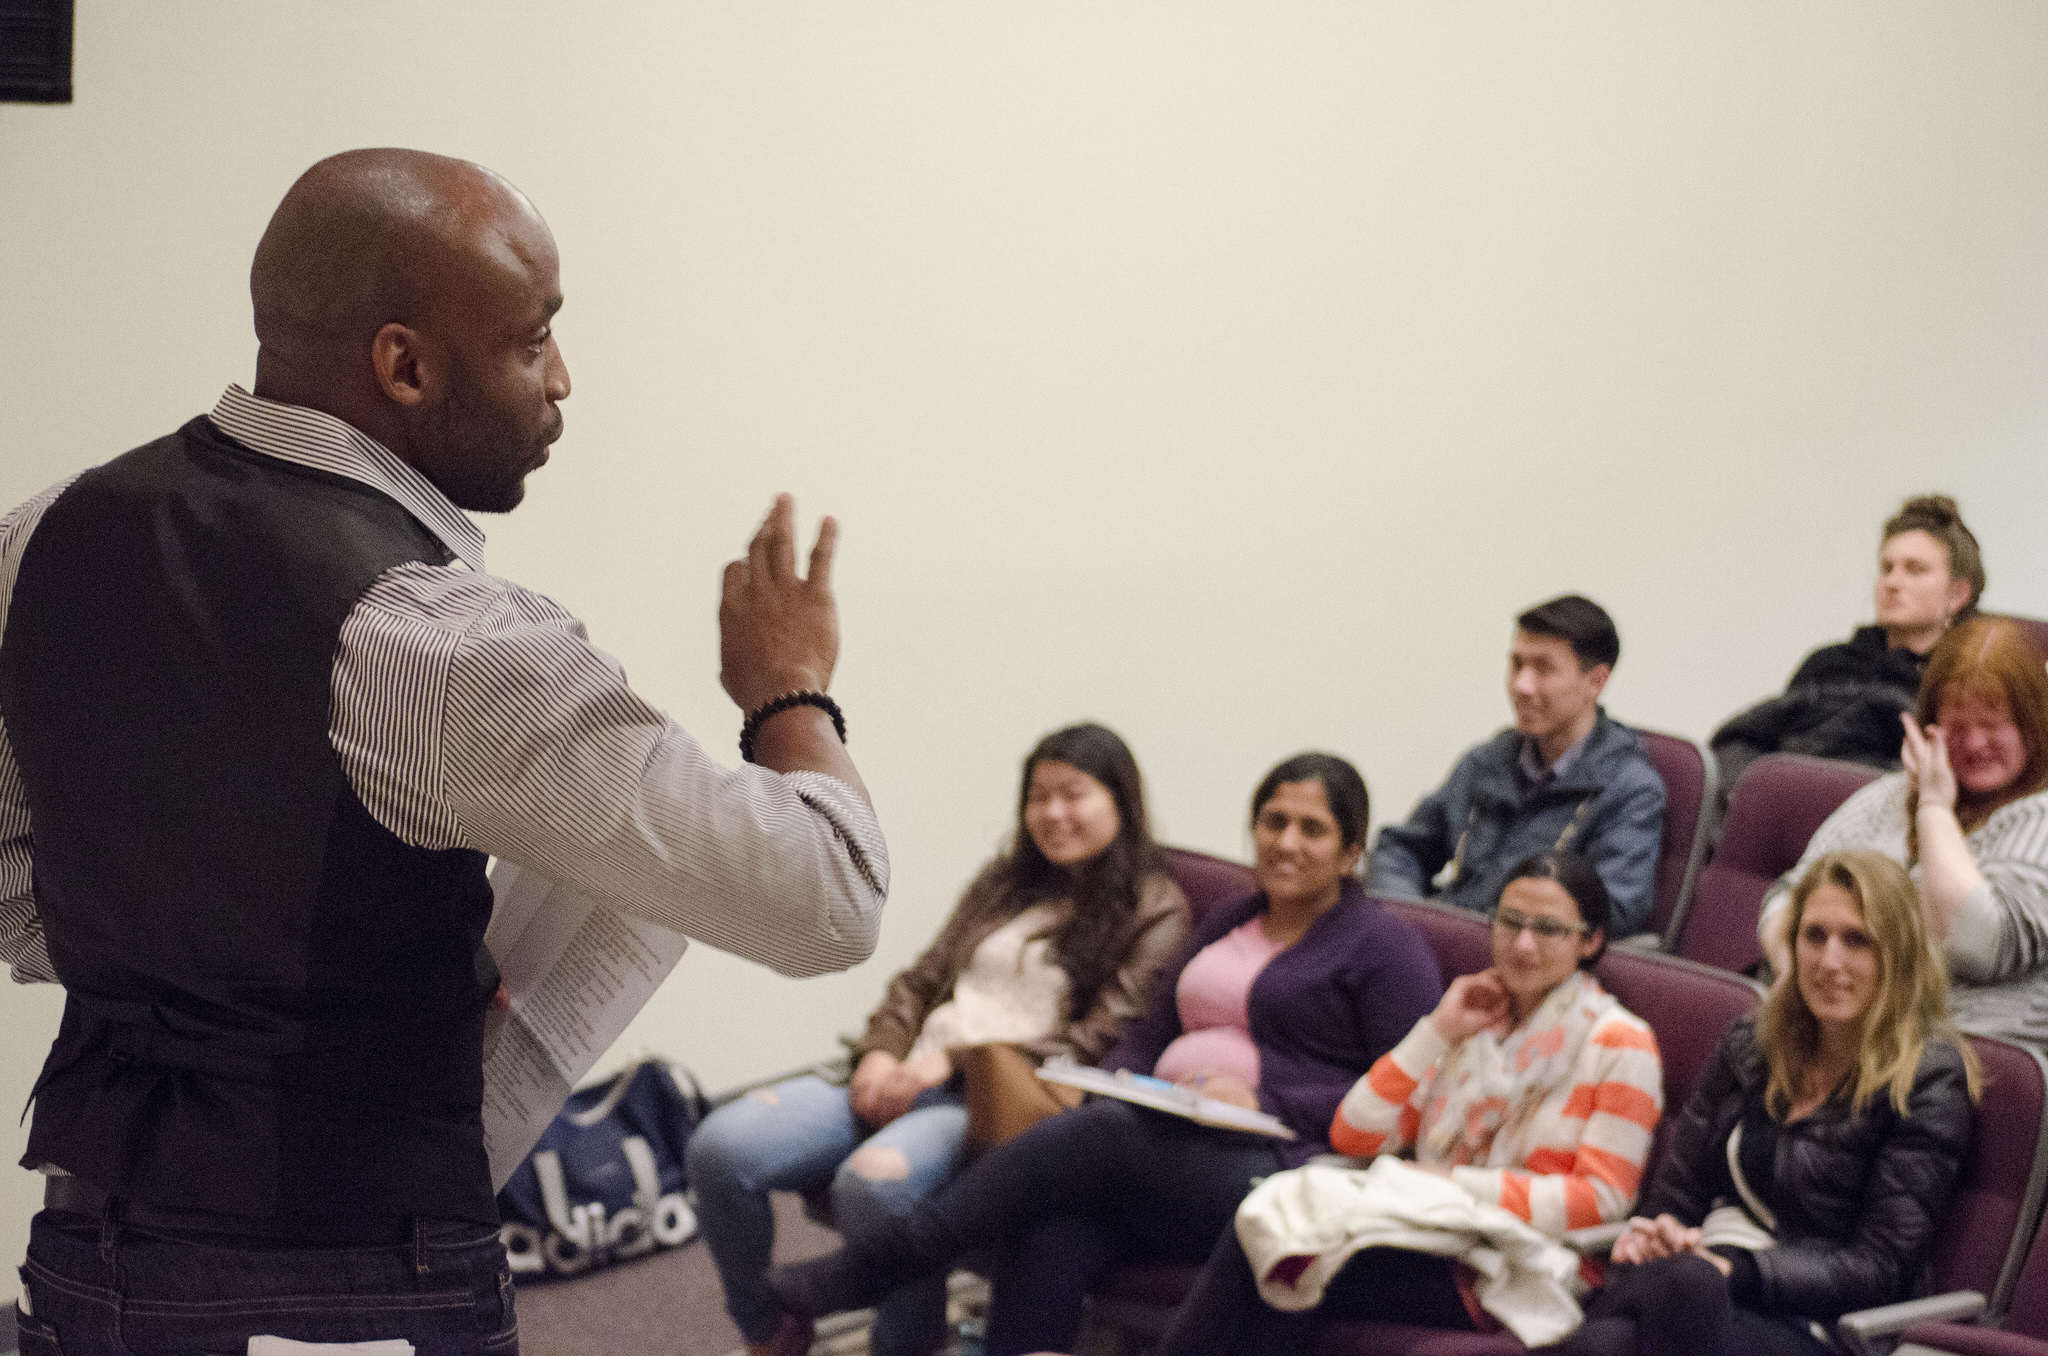 Javon Johnson, an assistant professor of Performance and Communication studies at SF State, recites poetry to a group of students in the Humanities Auditorium Friday, Feb. 26. (Hyunha Kim / Xpress)